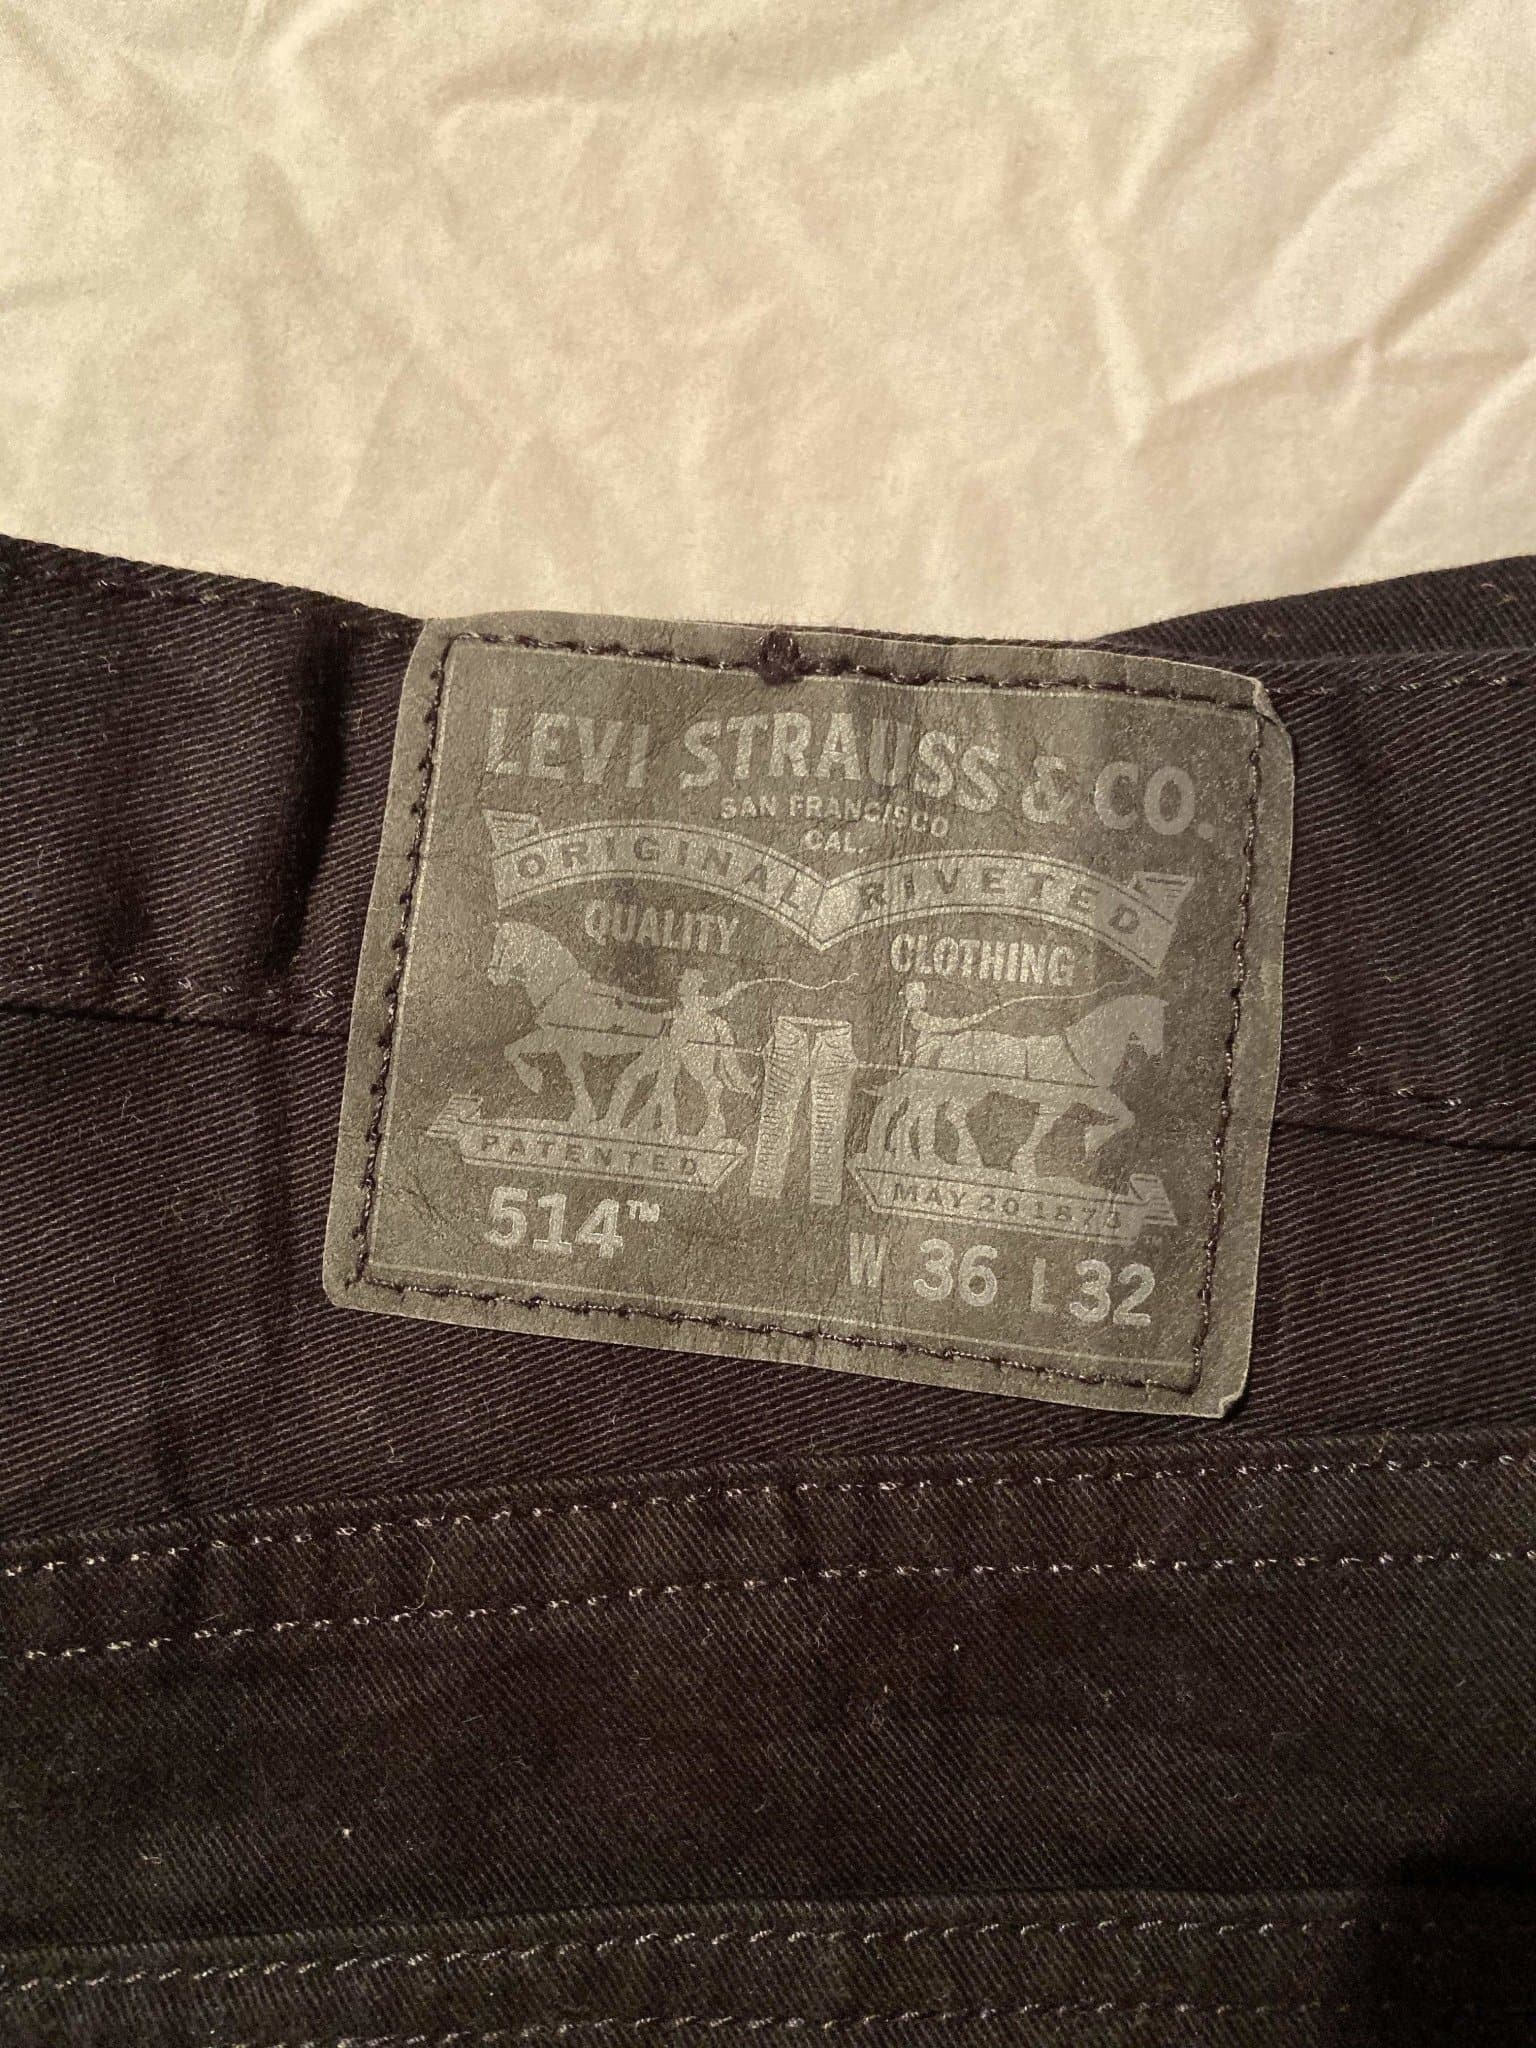 Levi's Original 514 Jeans W36 L32 (TE1) - Discounted Deals UK